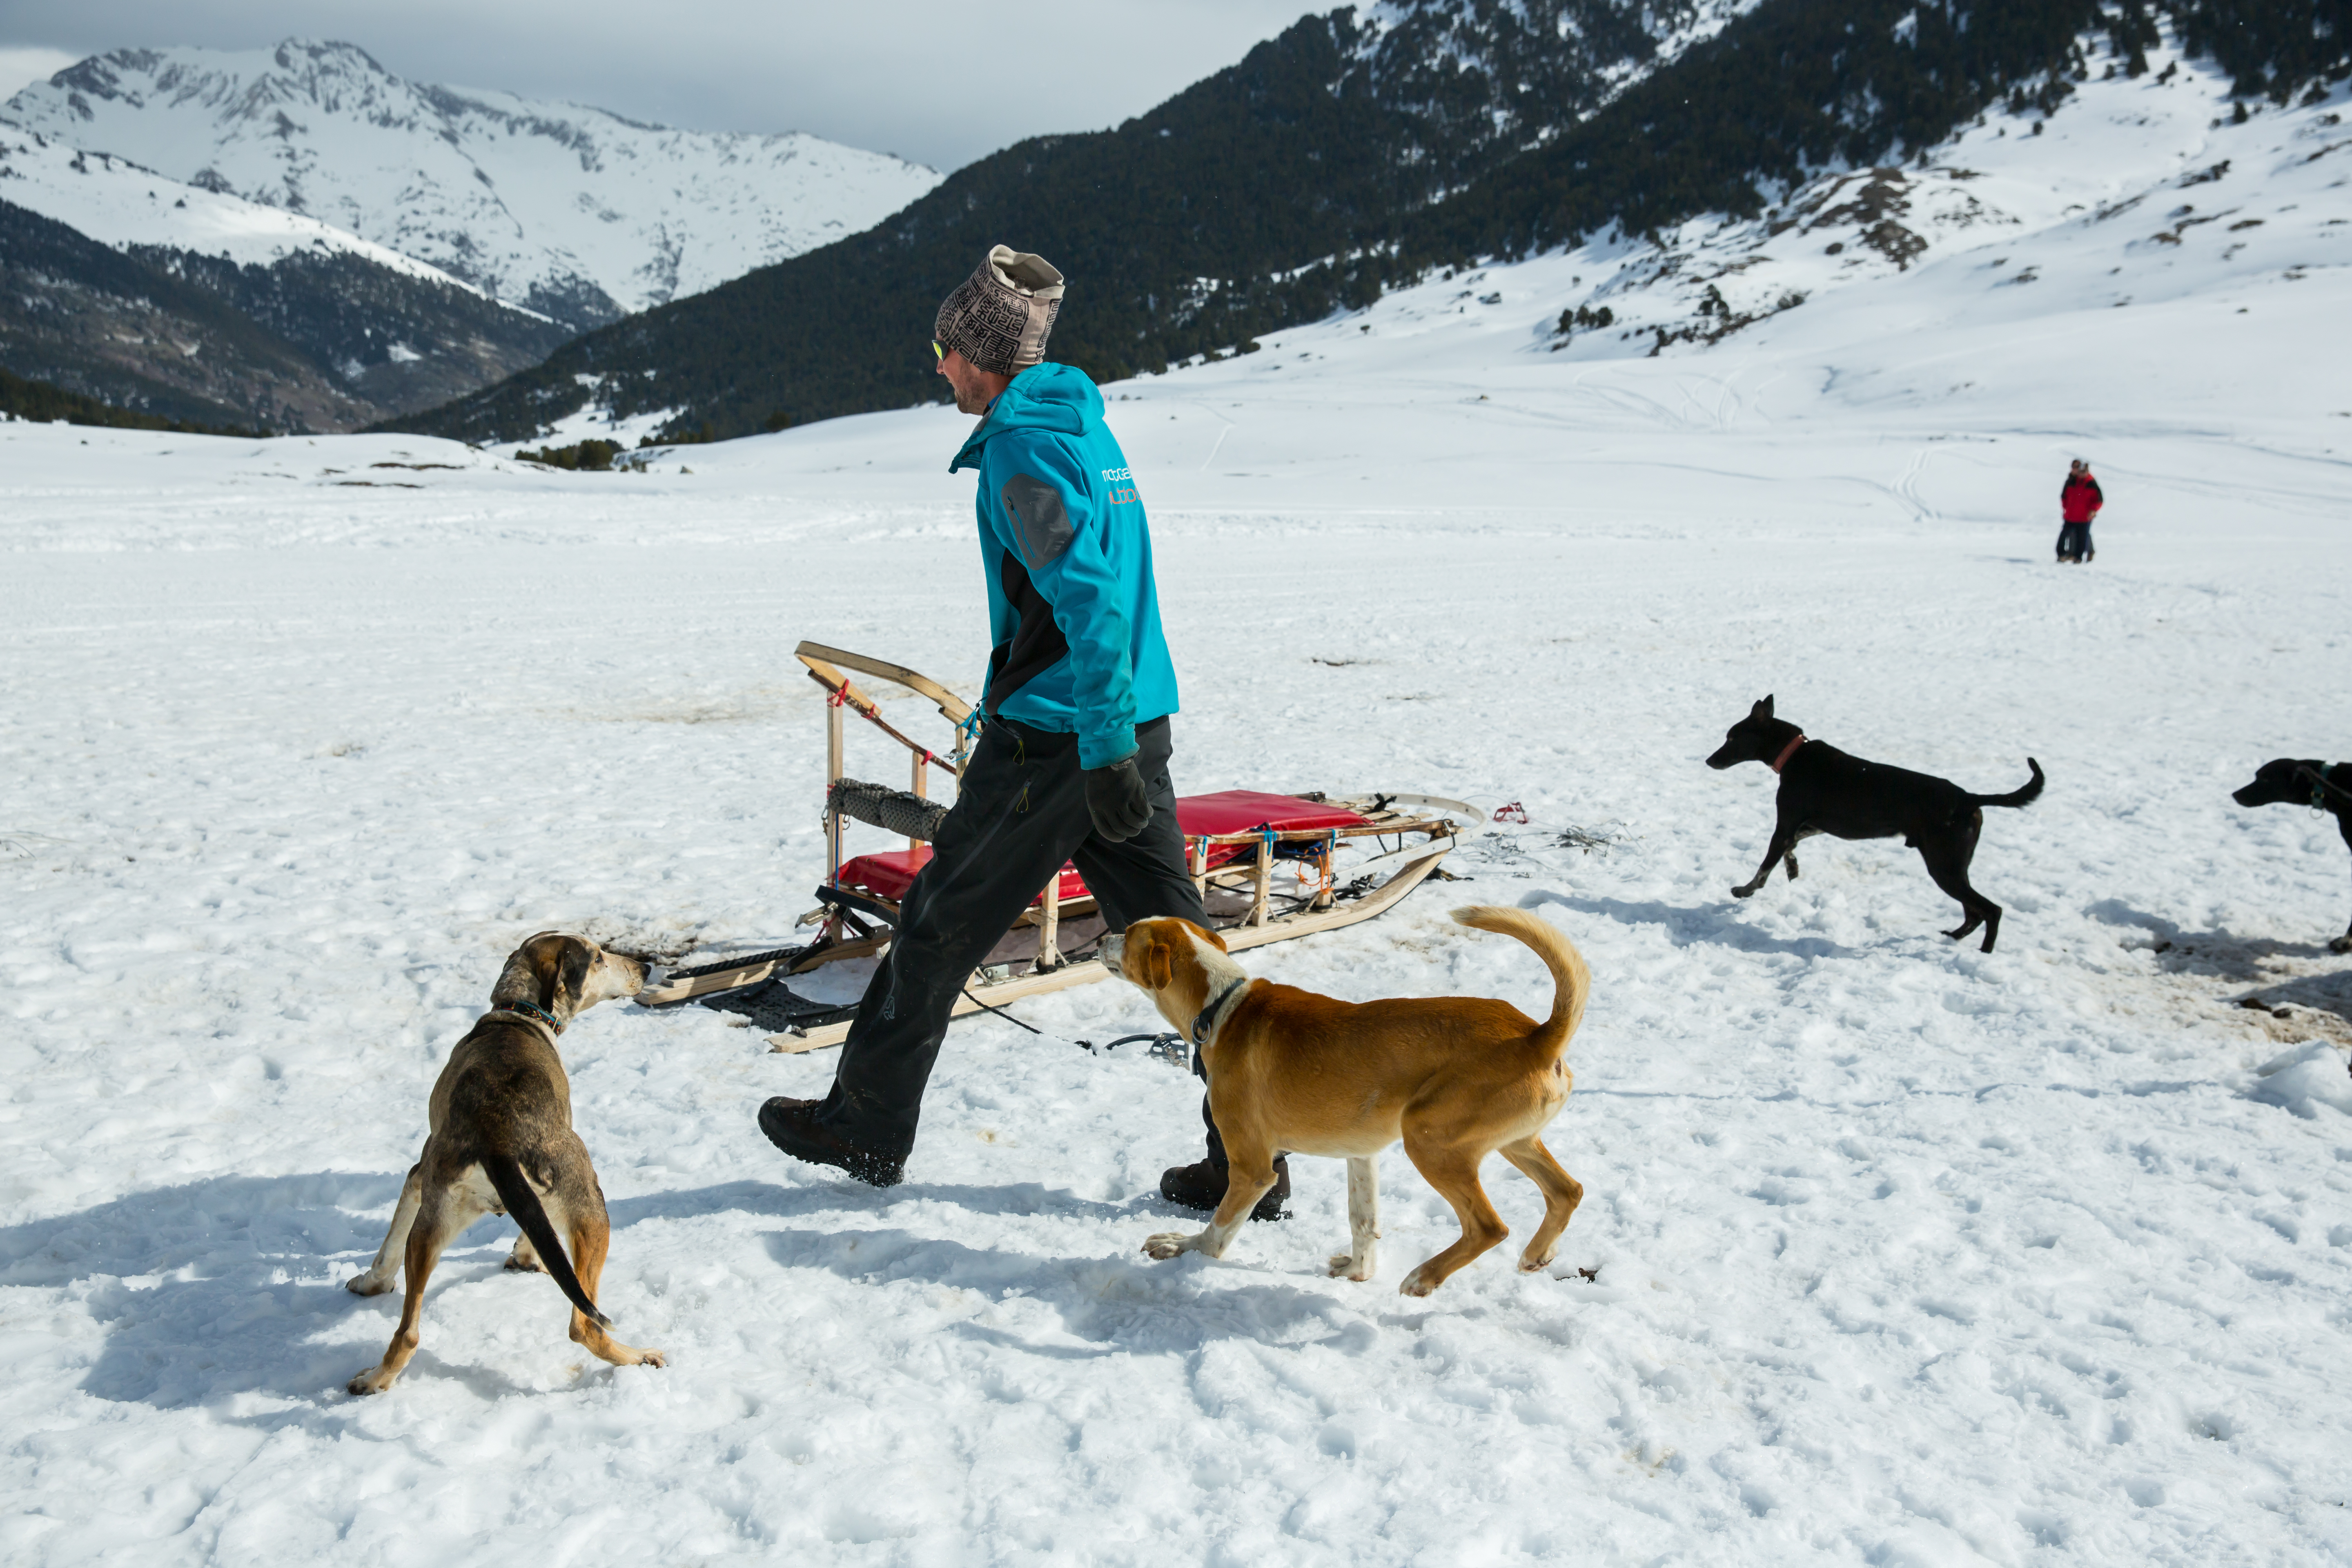 The Montgarri Outdoor musher and dogs.